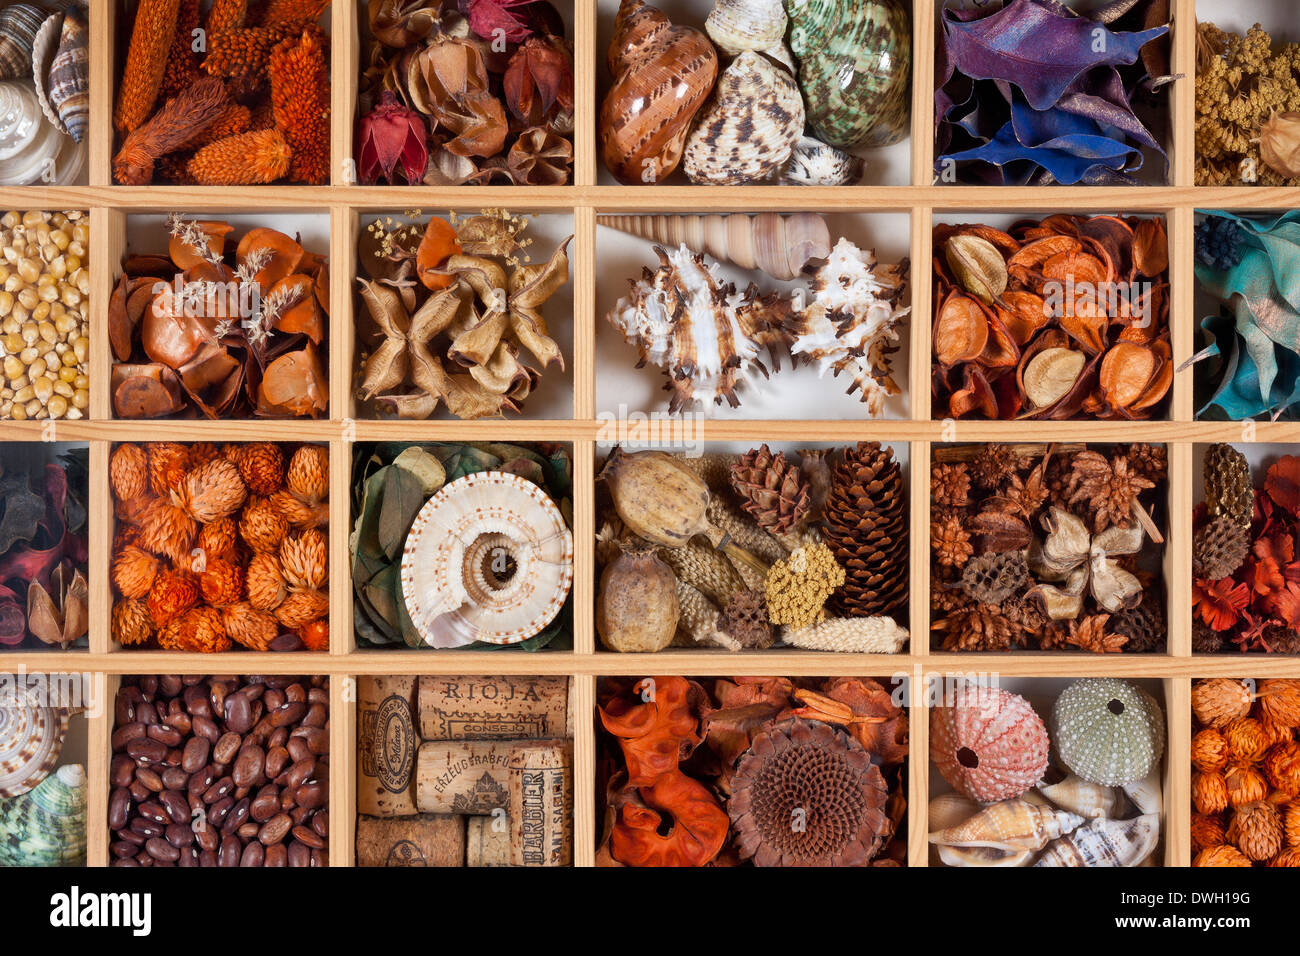 Arts & Crafts - Hobby of making picture displays of shells, dried flowers, seeds, corks etc. - Stock Image